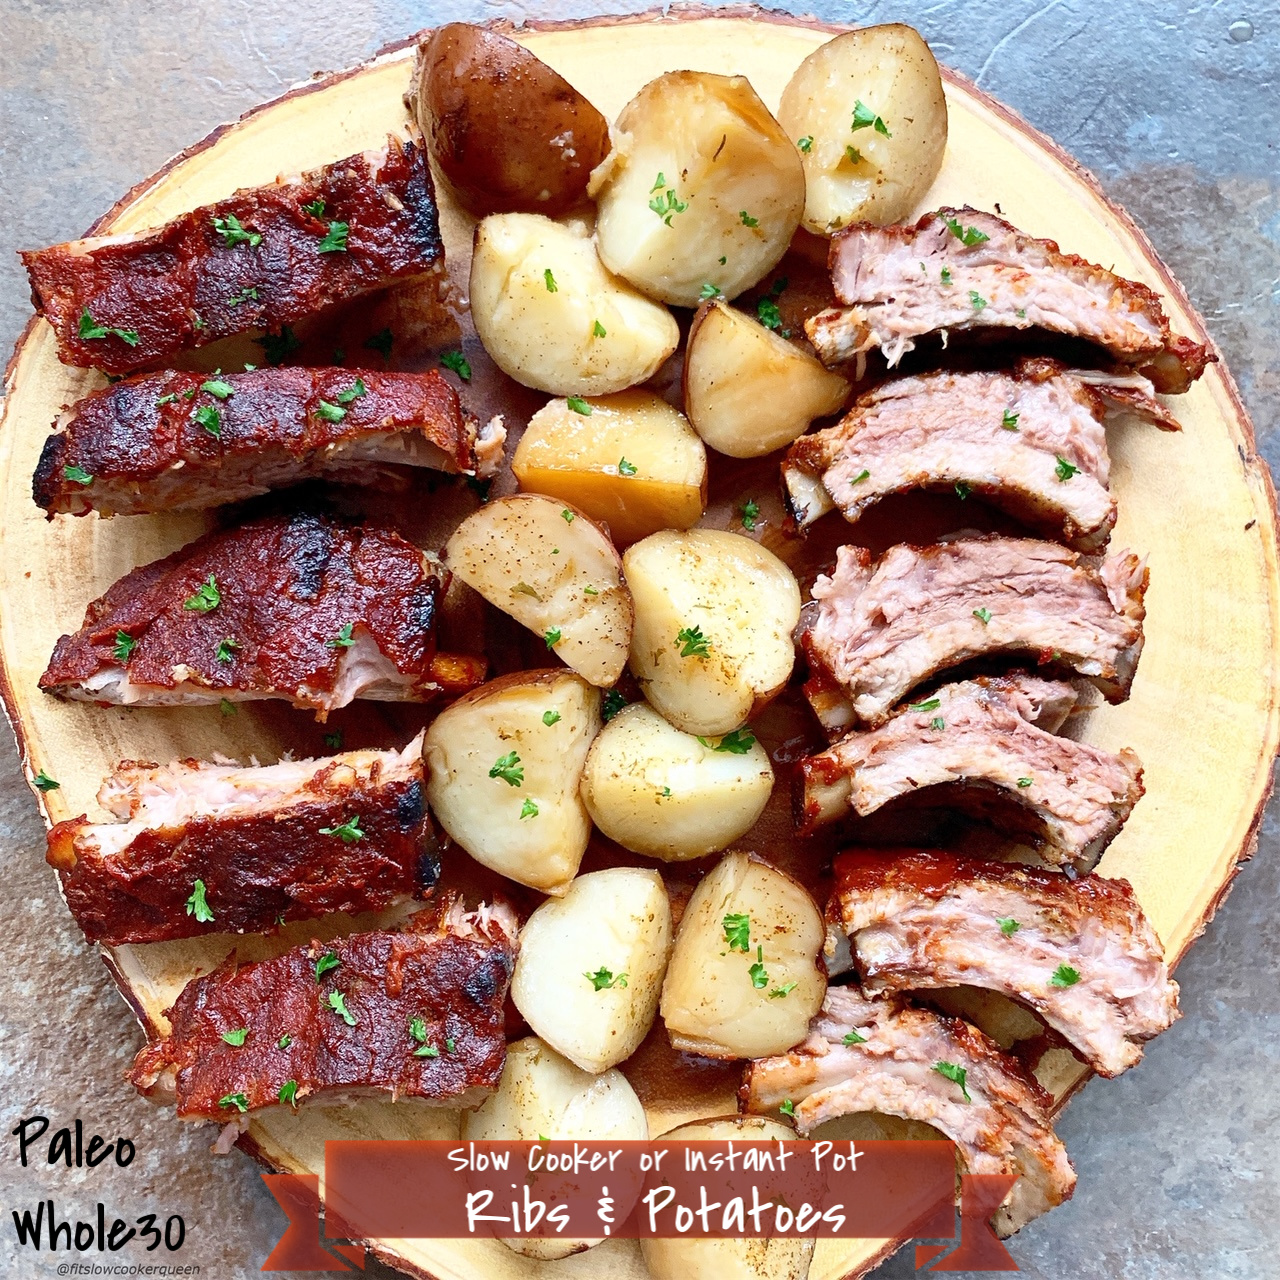 Melt in your mouth, falling off the bone ribs can easily be made in the slow cooker or Instant Pot. This paleo and whole30 recipe cooks the ribs and the potatoes all at once.